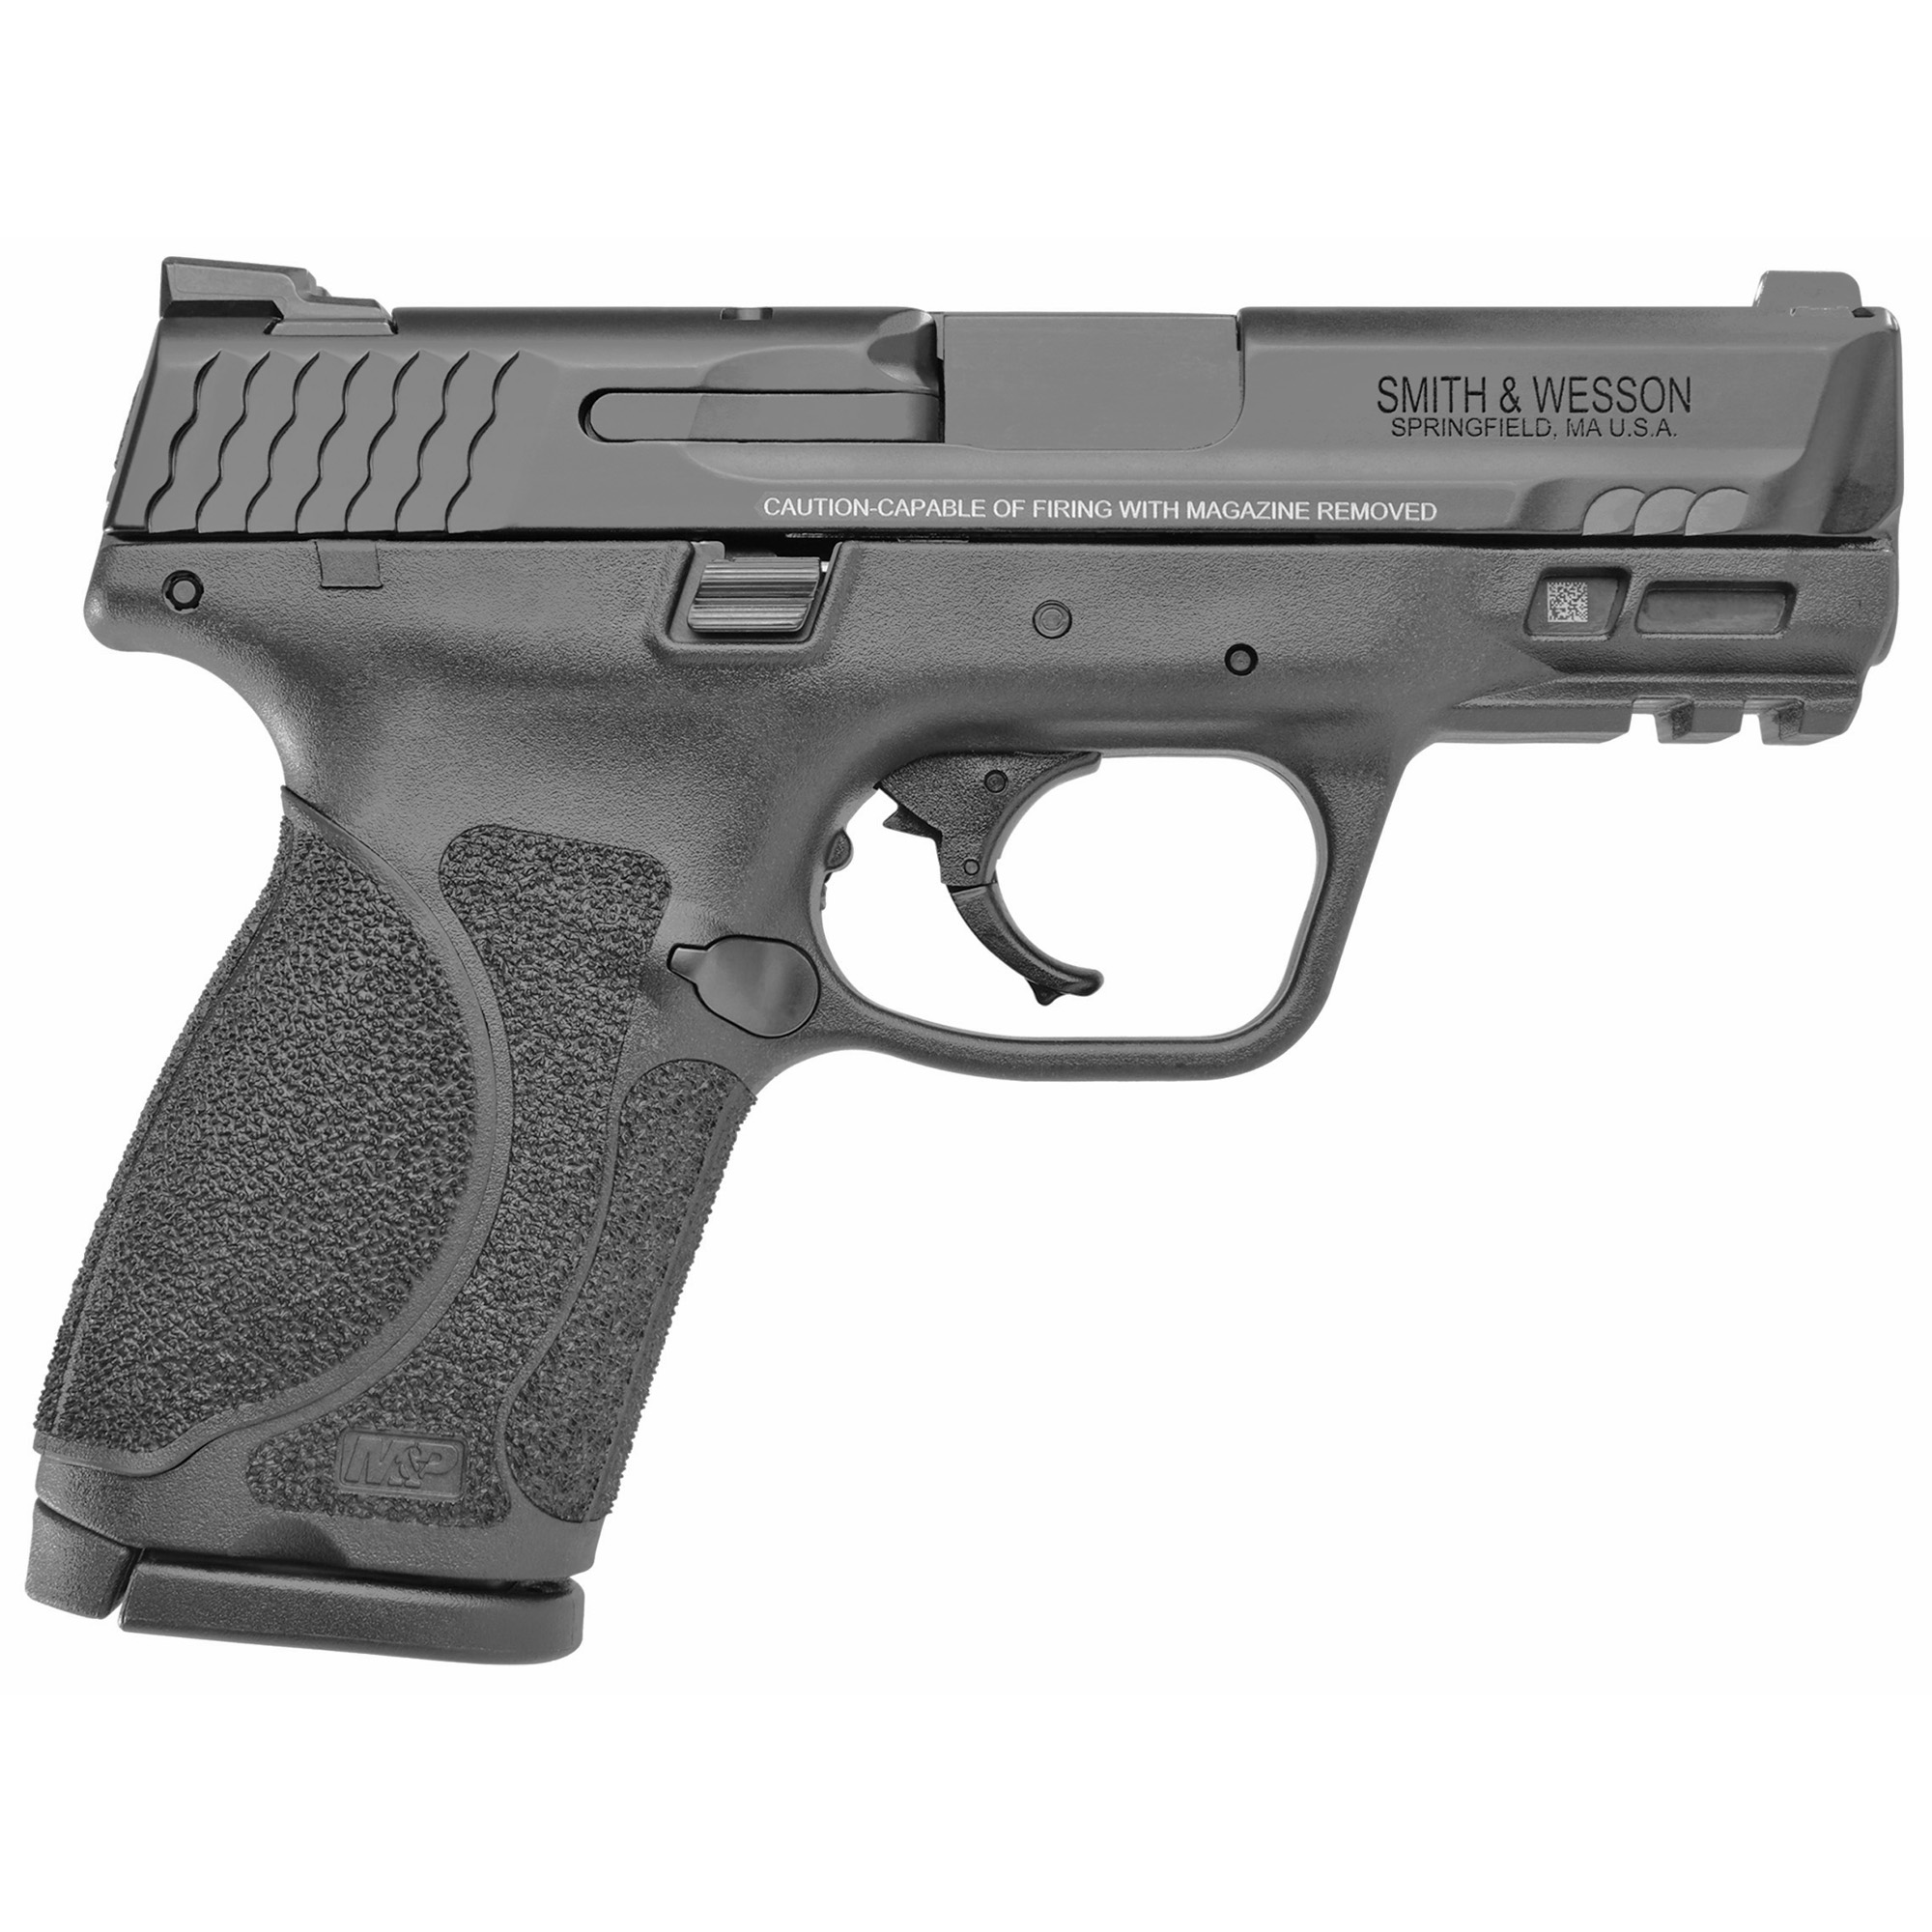 """Smith & Wesson M&P 2.0 Striker Fired 3.6"""" 9mm 10rd 3 Dot - Black-img-1"""